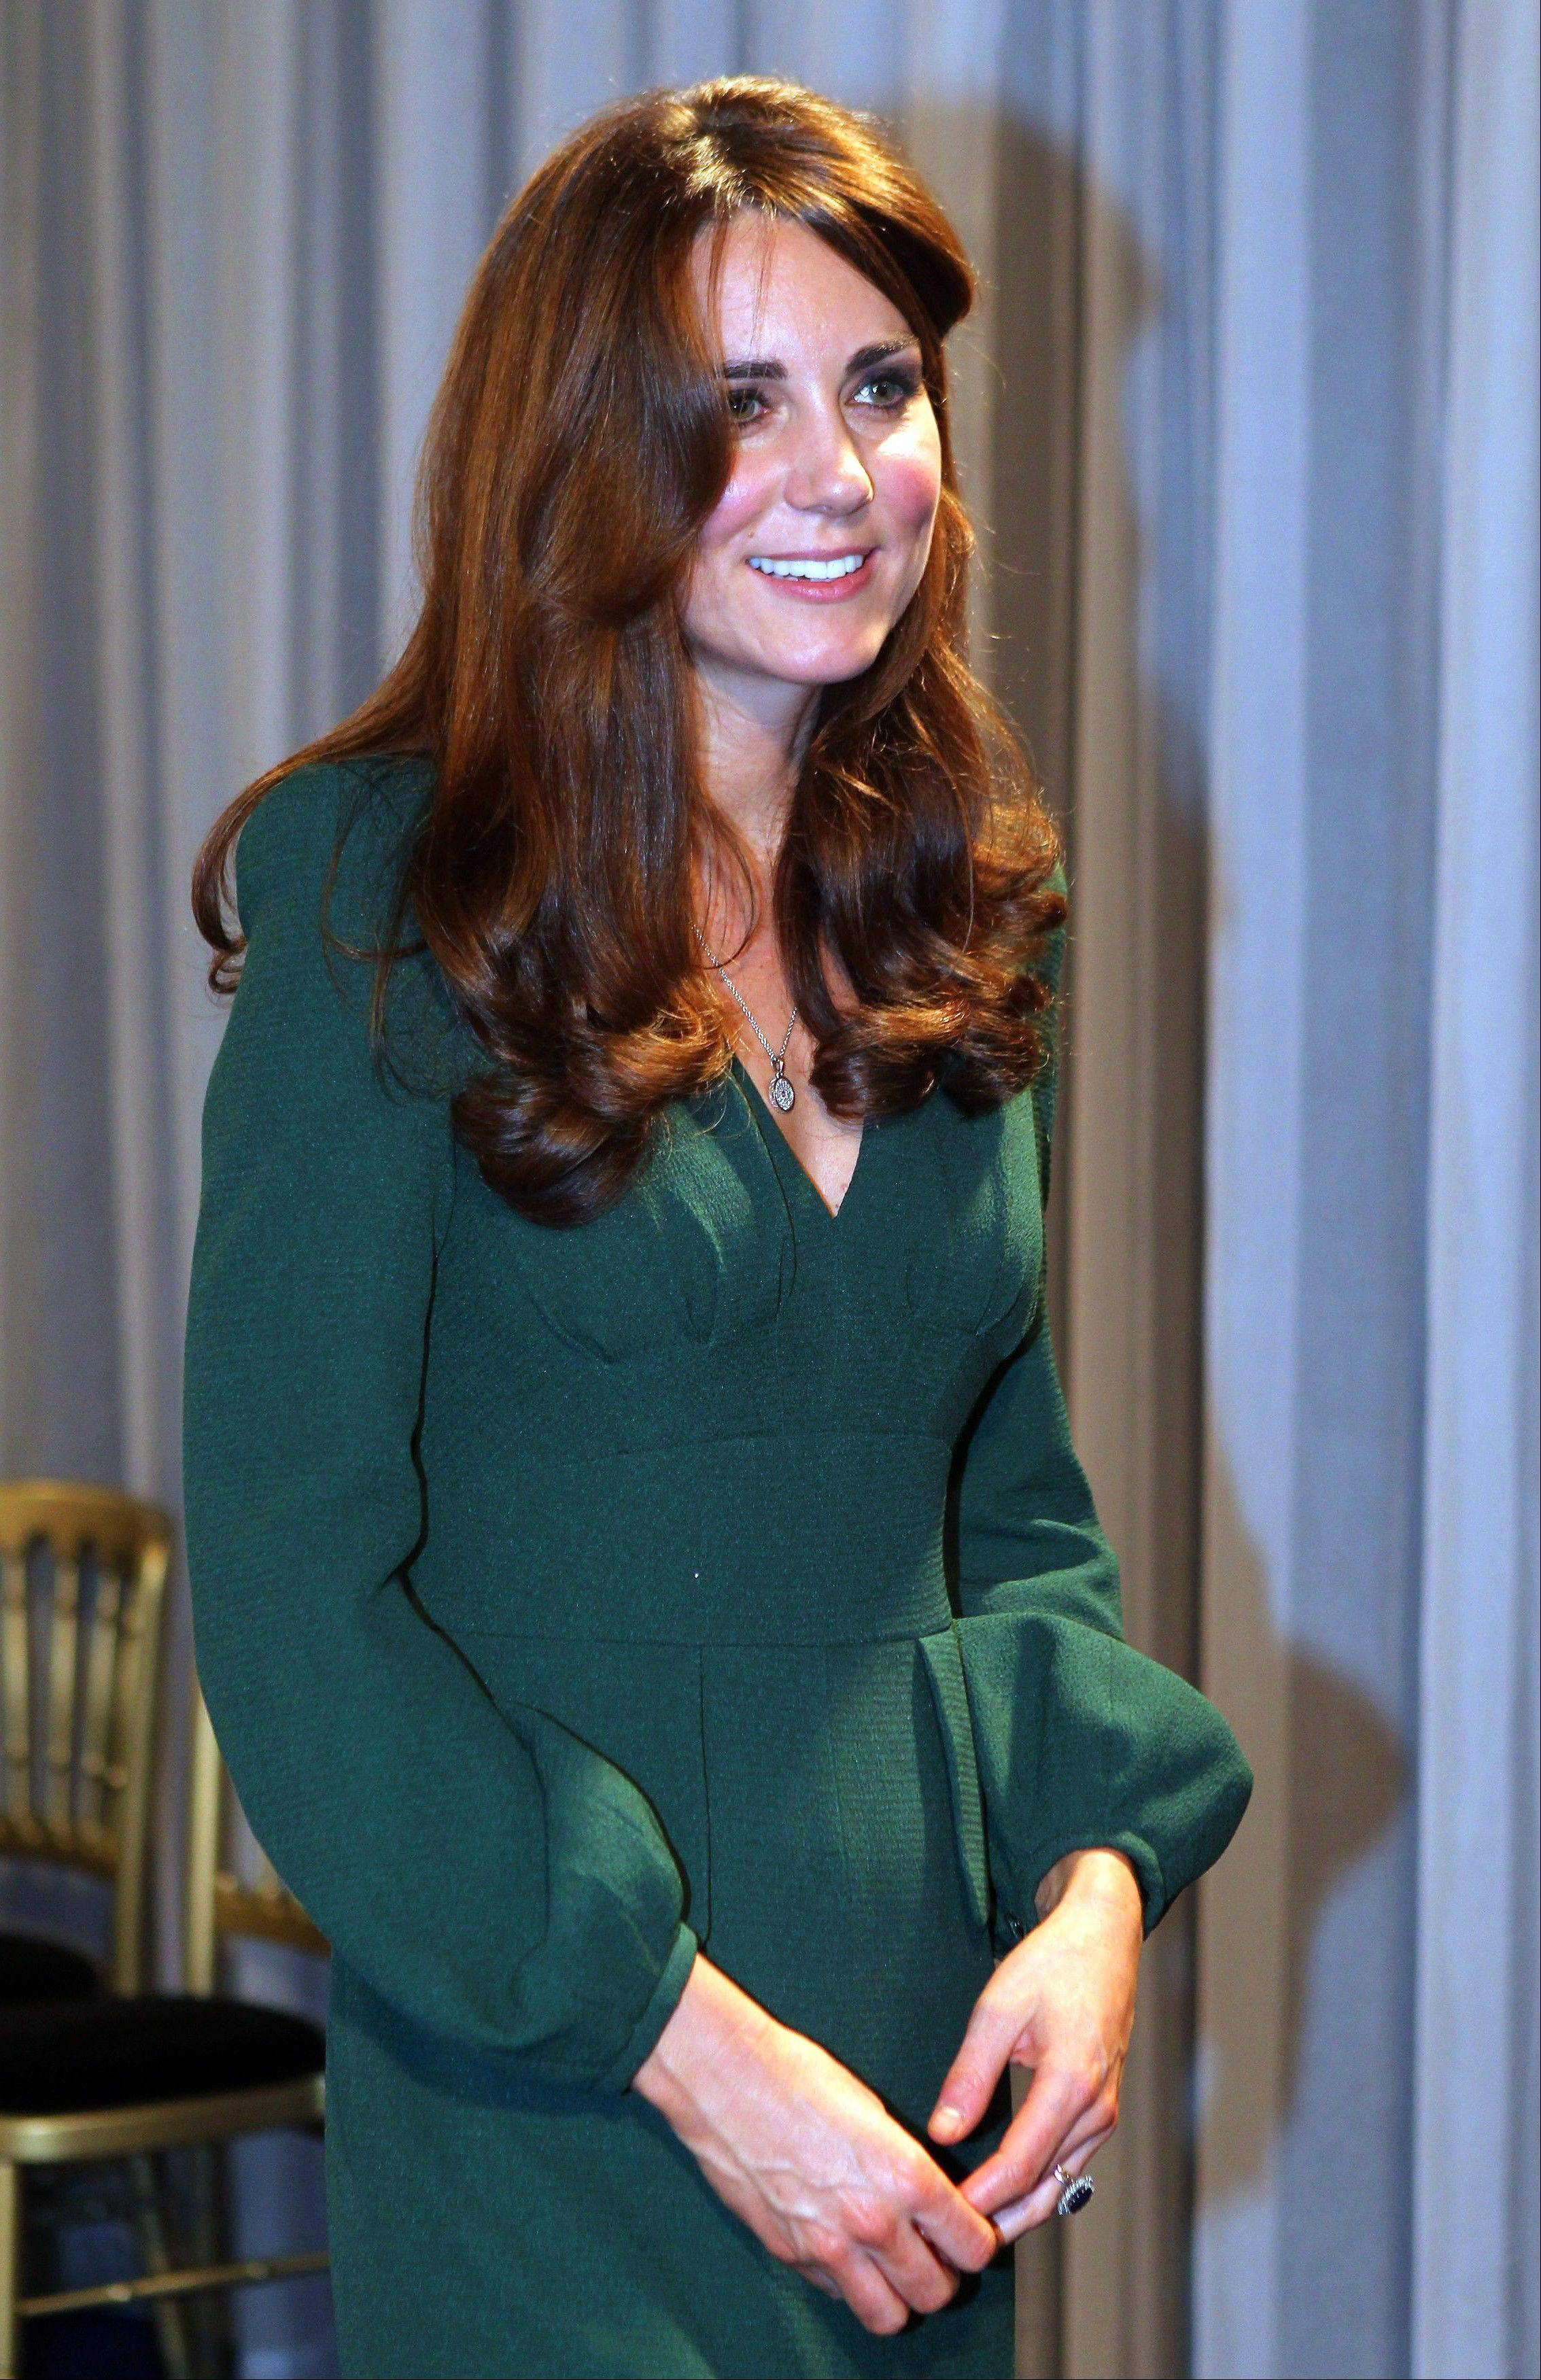 Kate, the Duchess of Cambridge, attended the BBC Sports Personality of the Year Awards 2012 in London last Sunday.